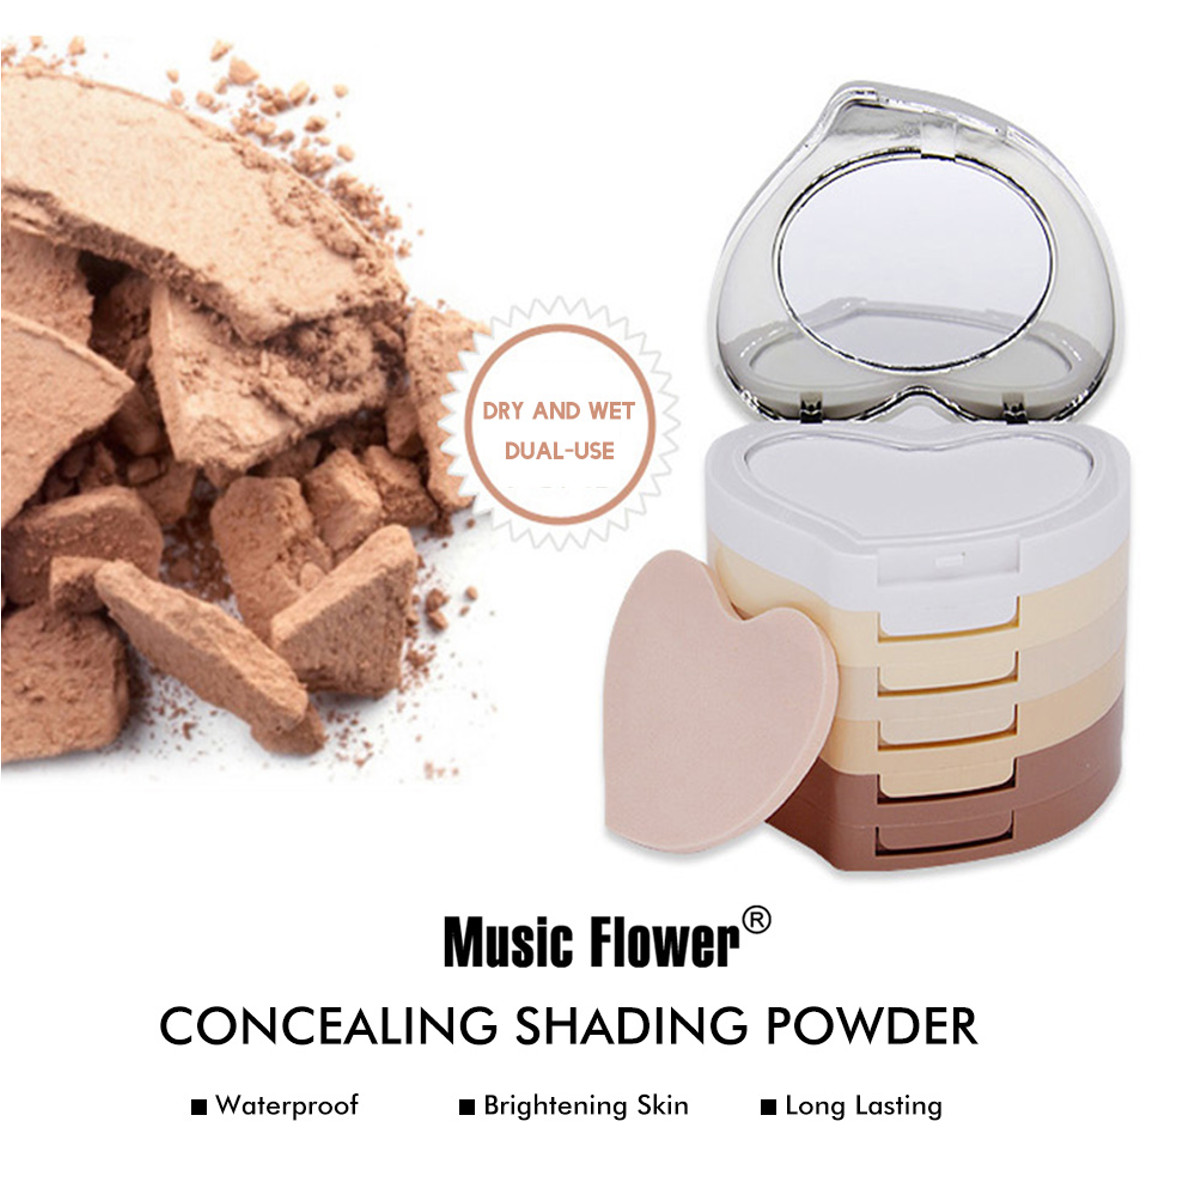 Music Flower 5 in 1 Concealing Shading Powder 24 Hours Long-